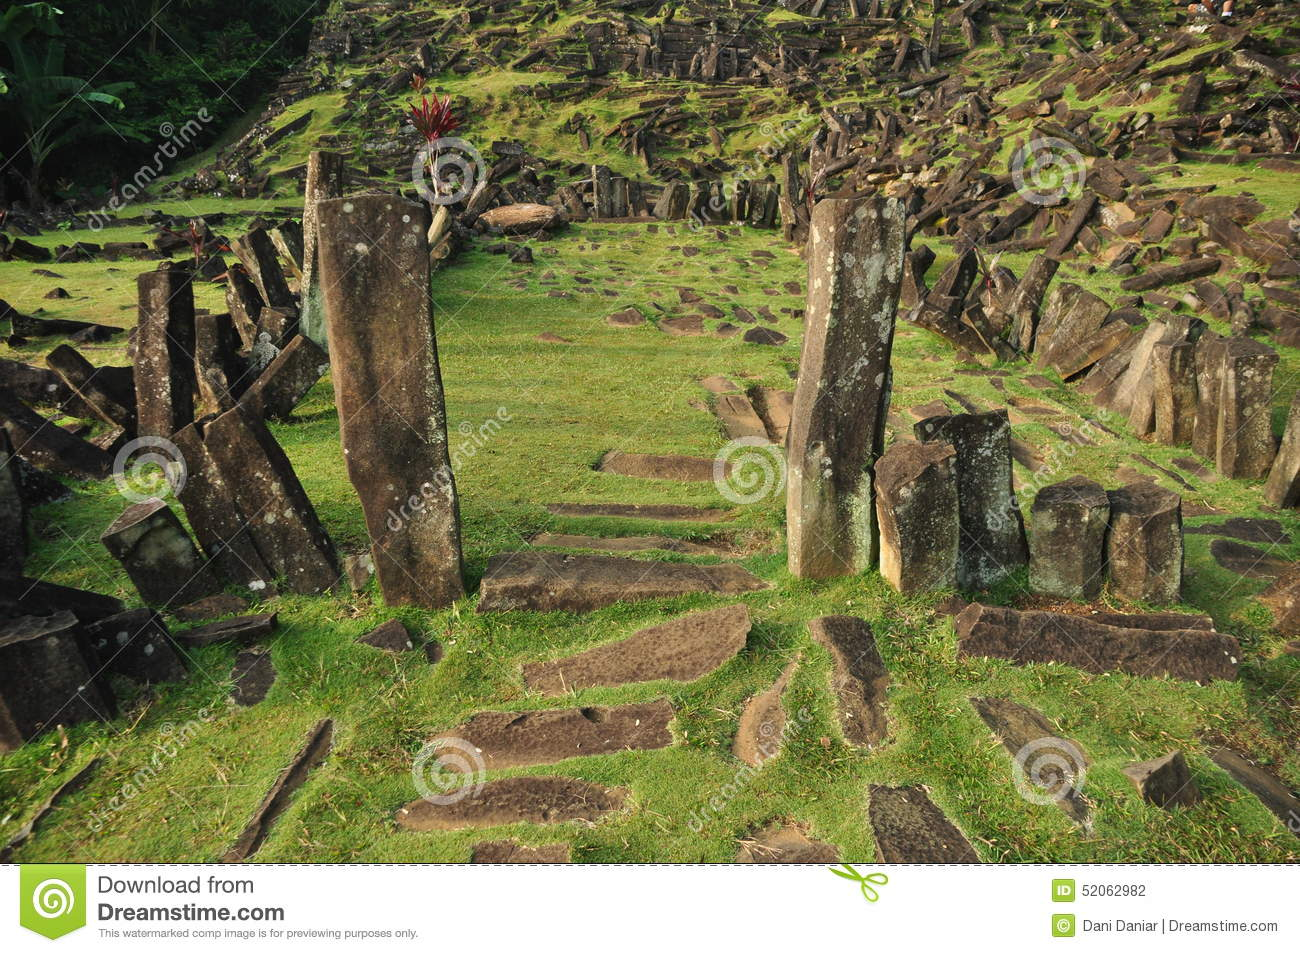 Gunung Padang Is A Megalithic Site Located In Karyamukti Village Cianjur Regency West Java Province Of Indonesia It Has Been Called The Largest